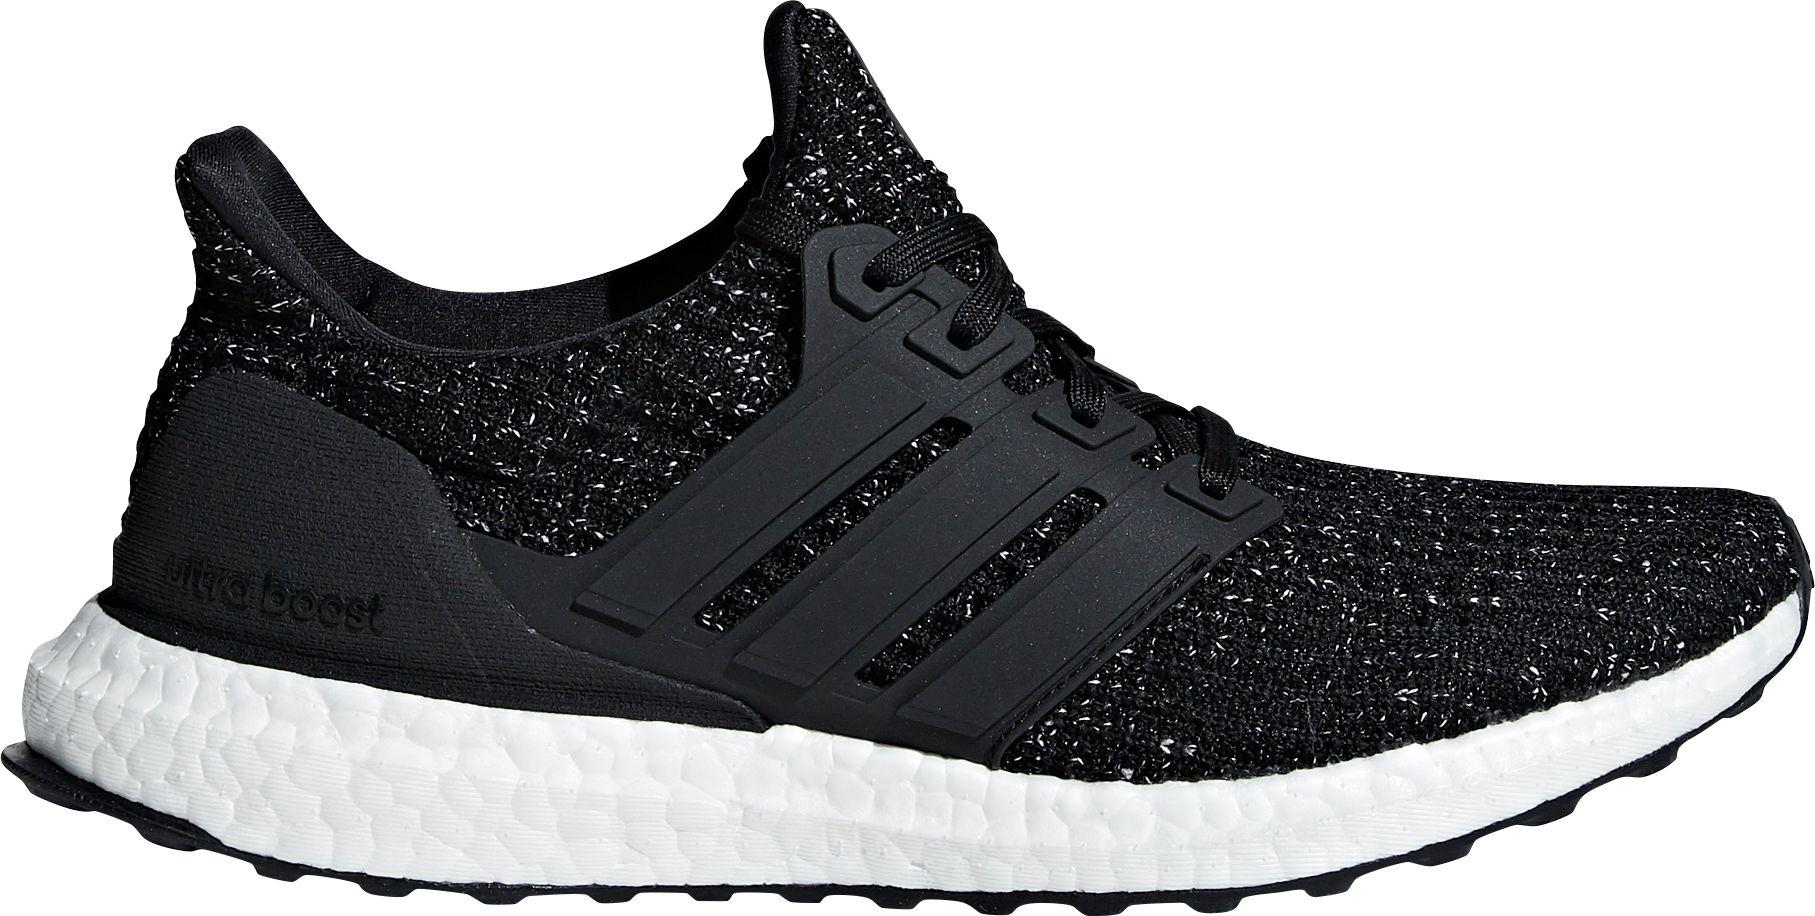 b7c70bb9faabe Lyst - adidas Ultraboost Running Shoes in Black